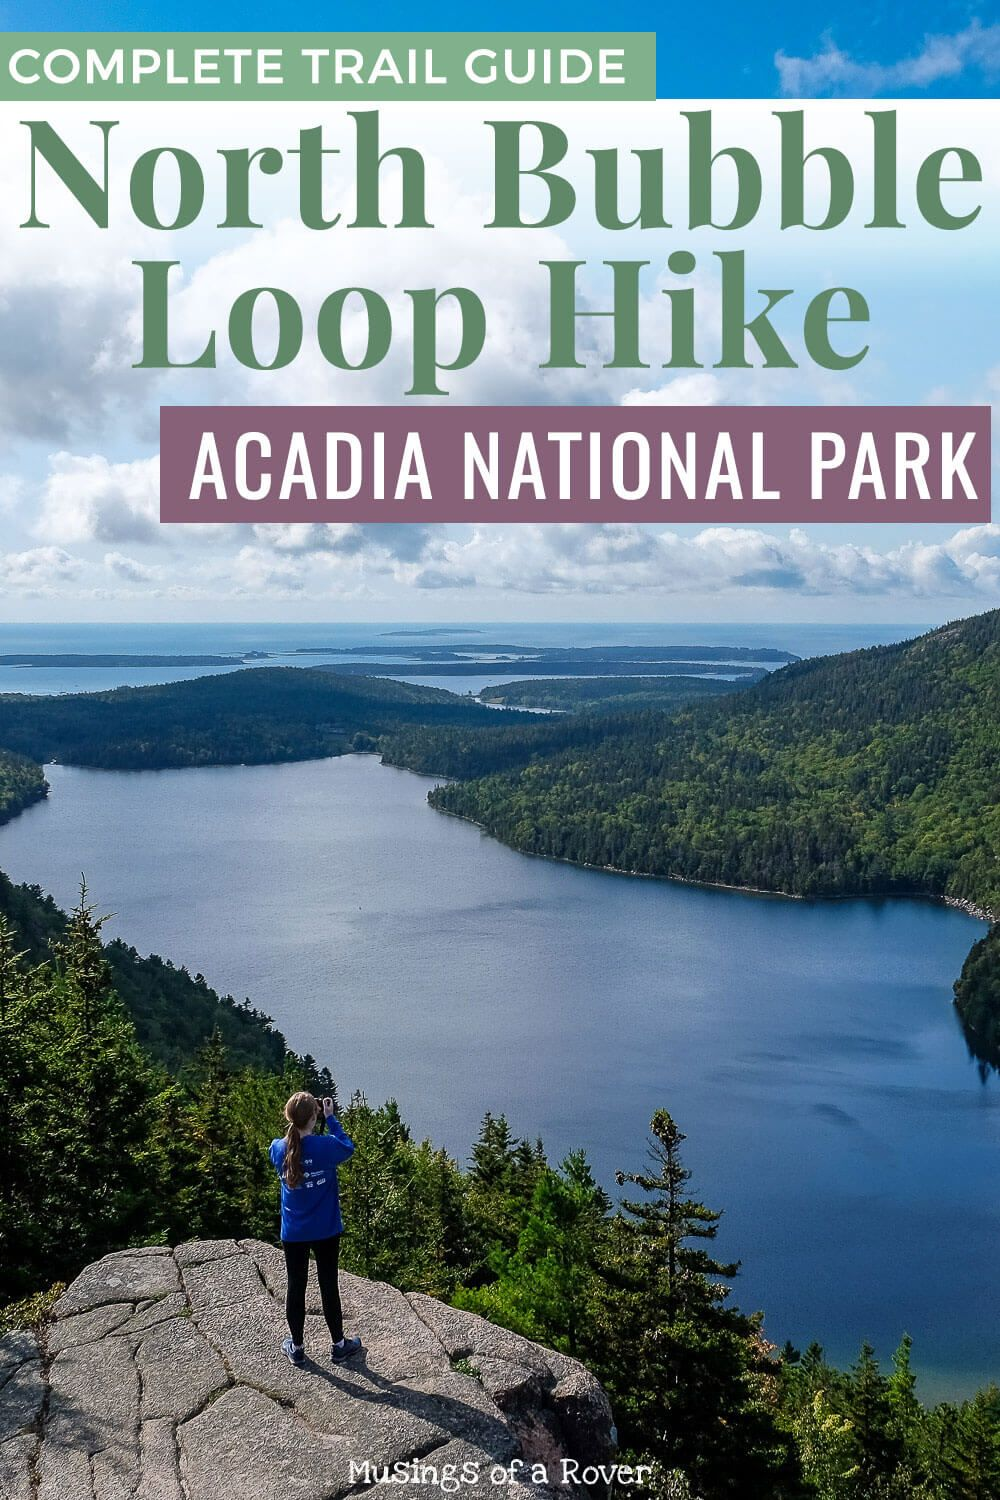 Acadia National Park has lots of amazing hikes. And the Bubbles Trail is one of them. You can hike up to the summit of South Bubble and see Bubble Rock, but if you want amazing views of Jordan Pond and Eagle Lake without the crowds, then consider hiking to North Bubble instead. Or you can combine both Bubbles into this loop hike. Definitely consider this for your next trip to Acadia National Park!